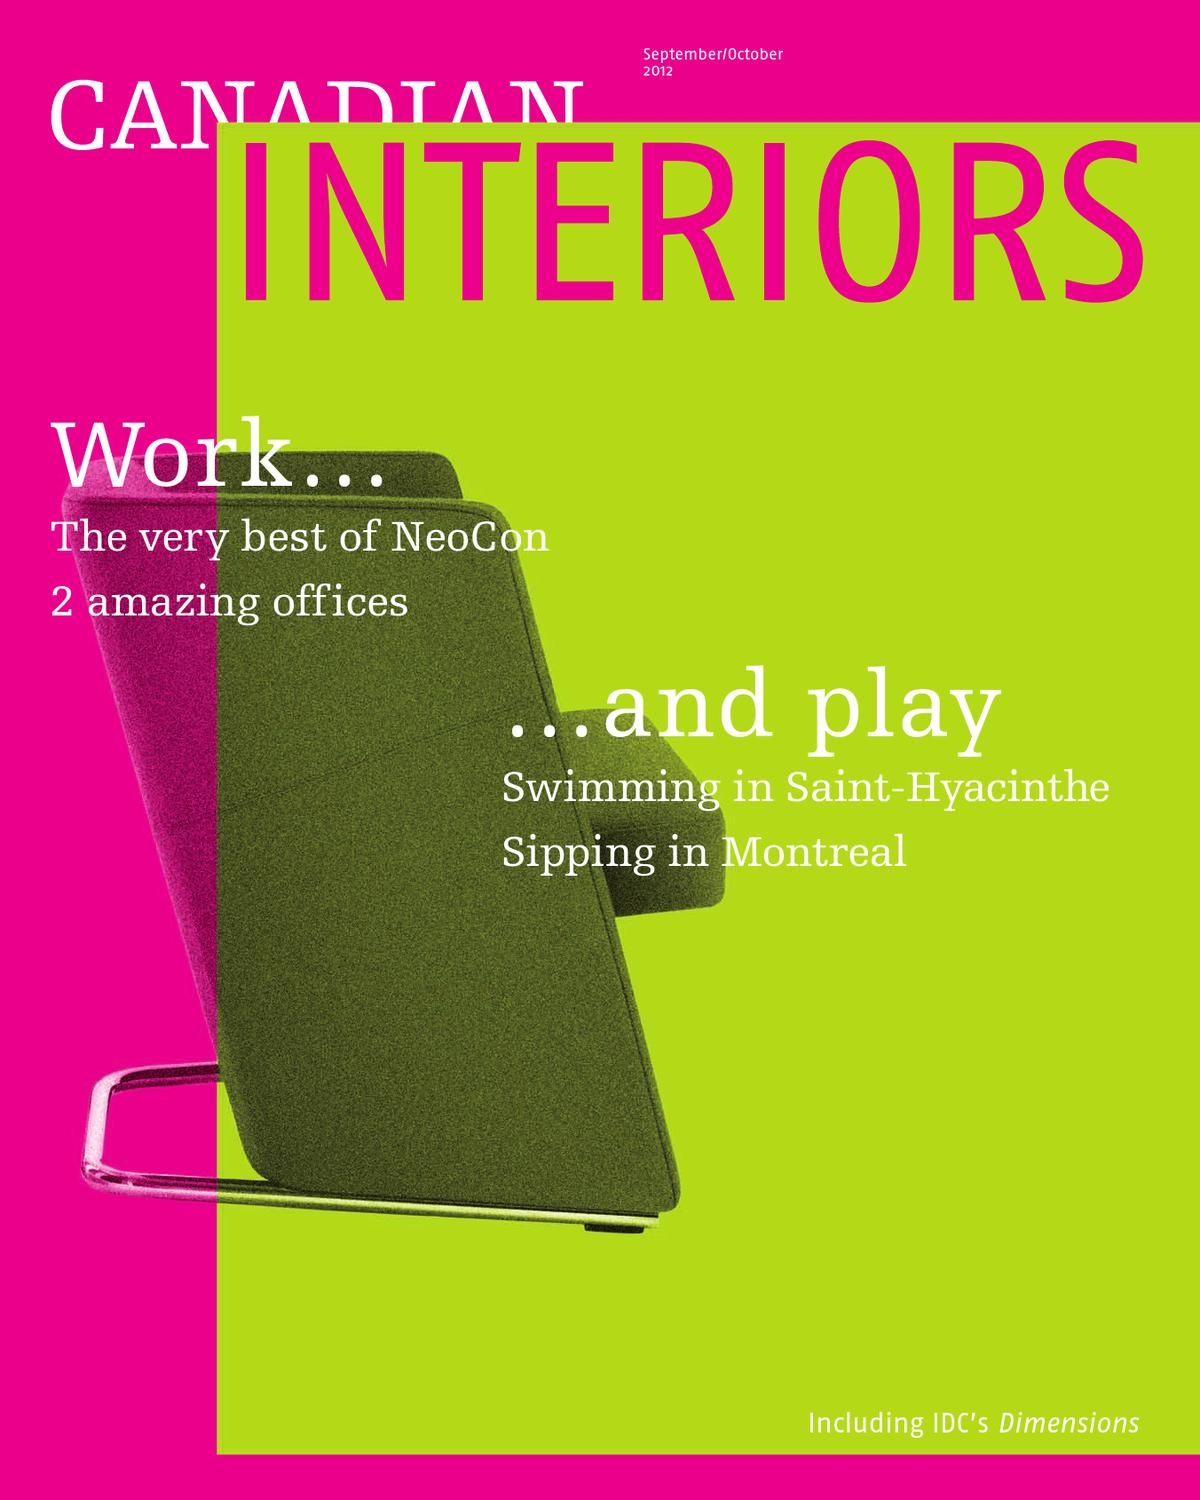 Canadian interiors september october 2012 by annex business media issuu